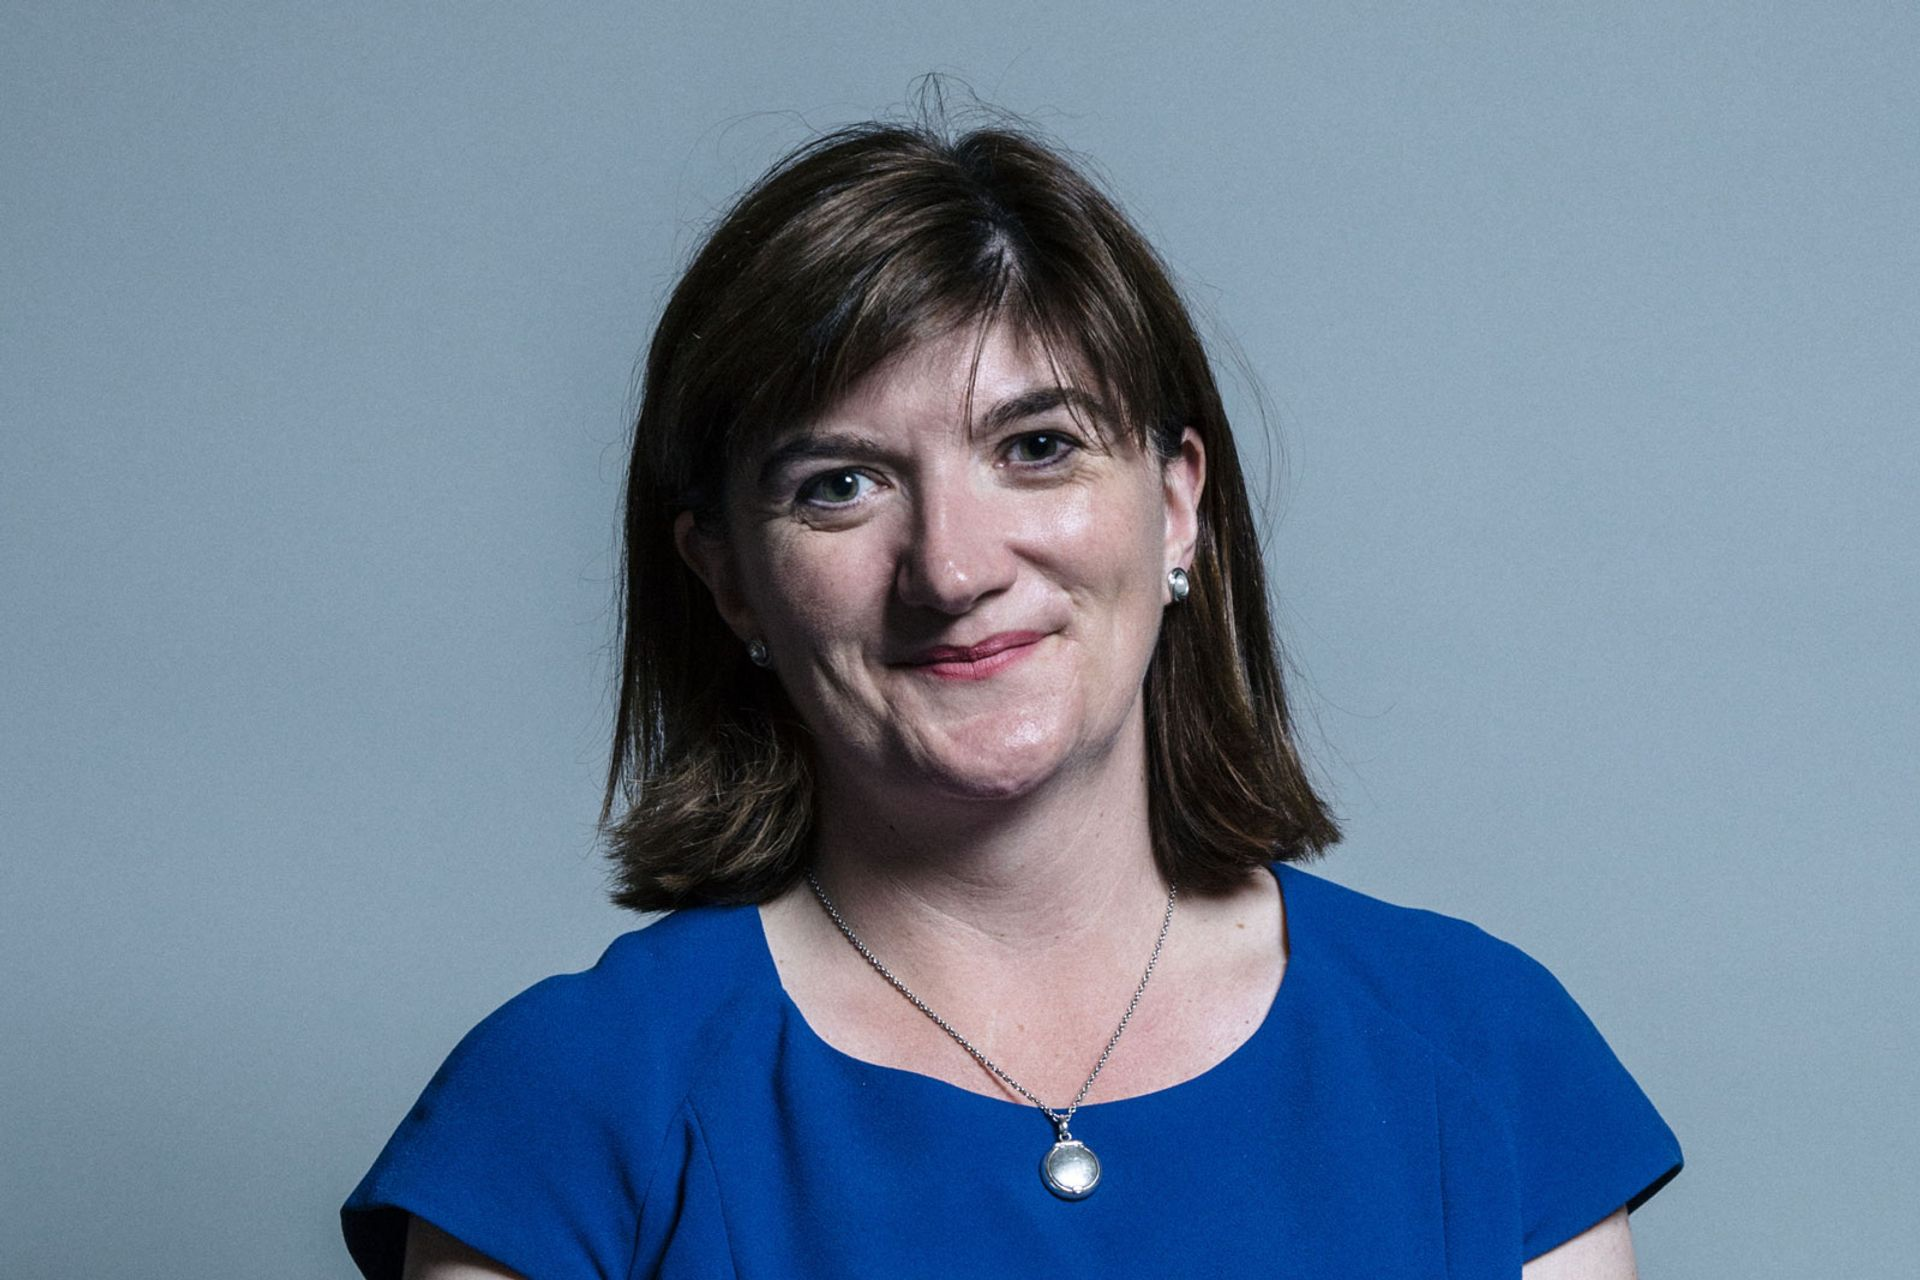 Nicky Morgan is the new UK Secretary of State for Digital, Culture, Media and Sport